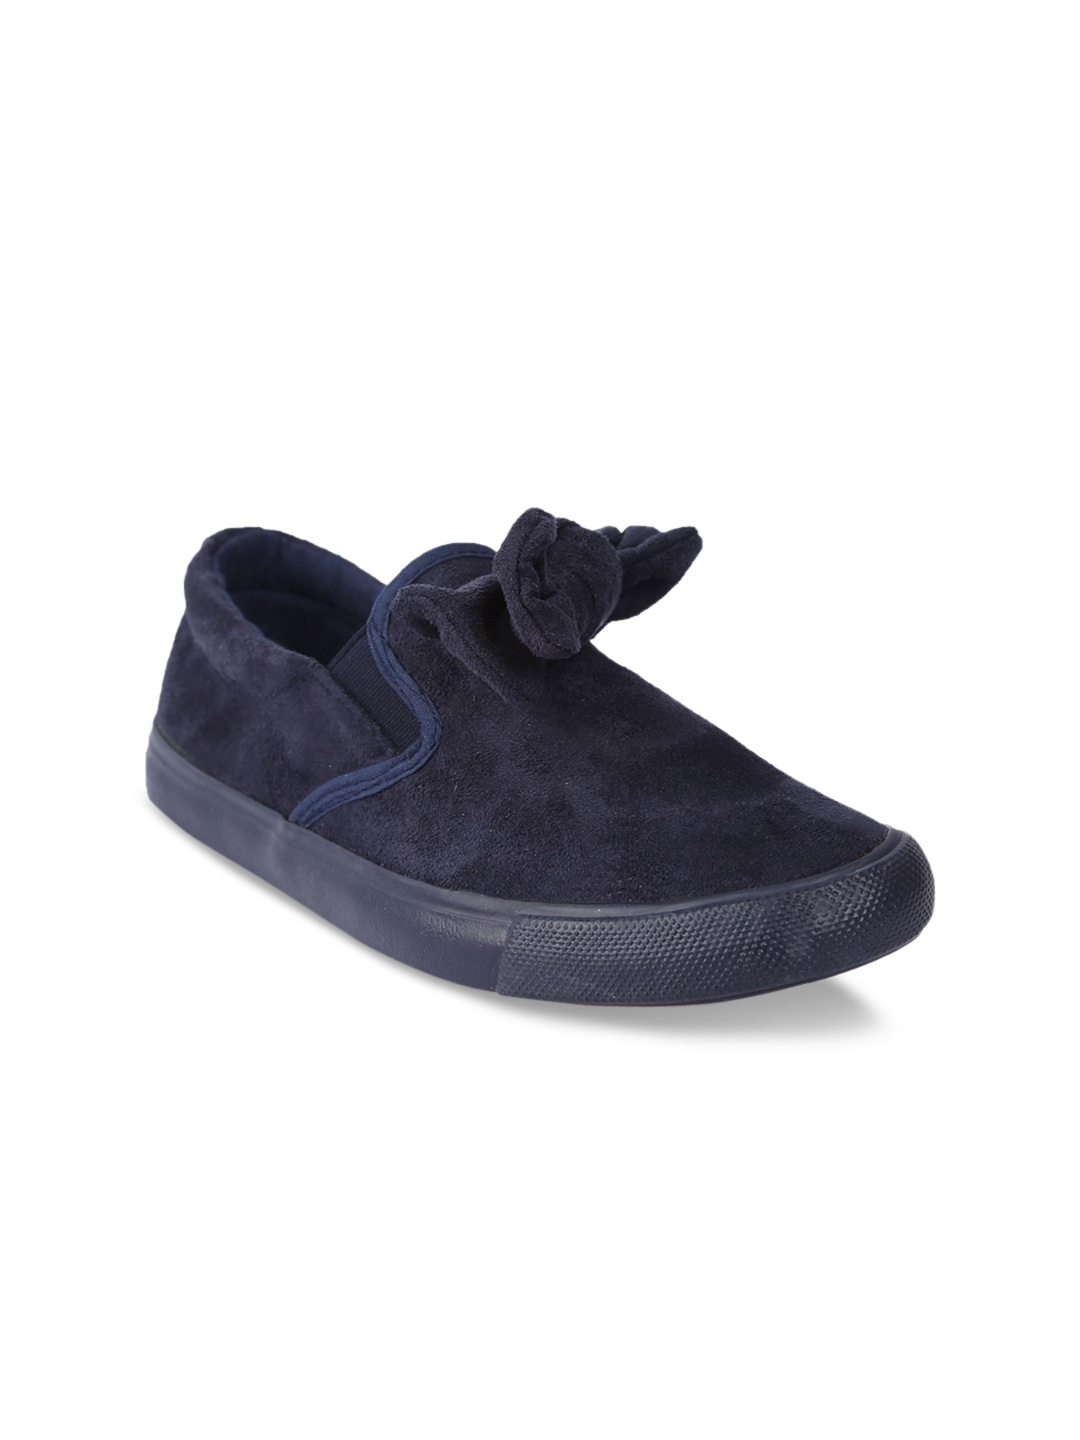 Navy Blue Suede Slip-On Sneakers